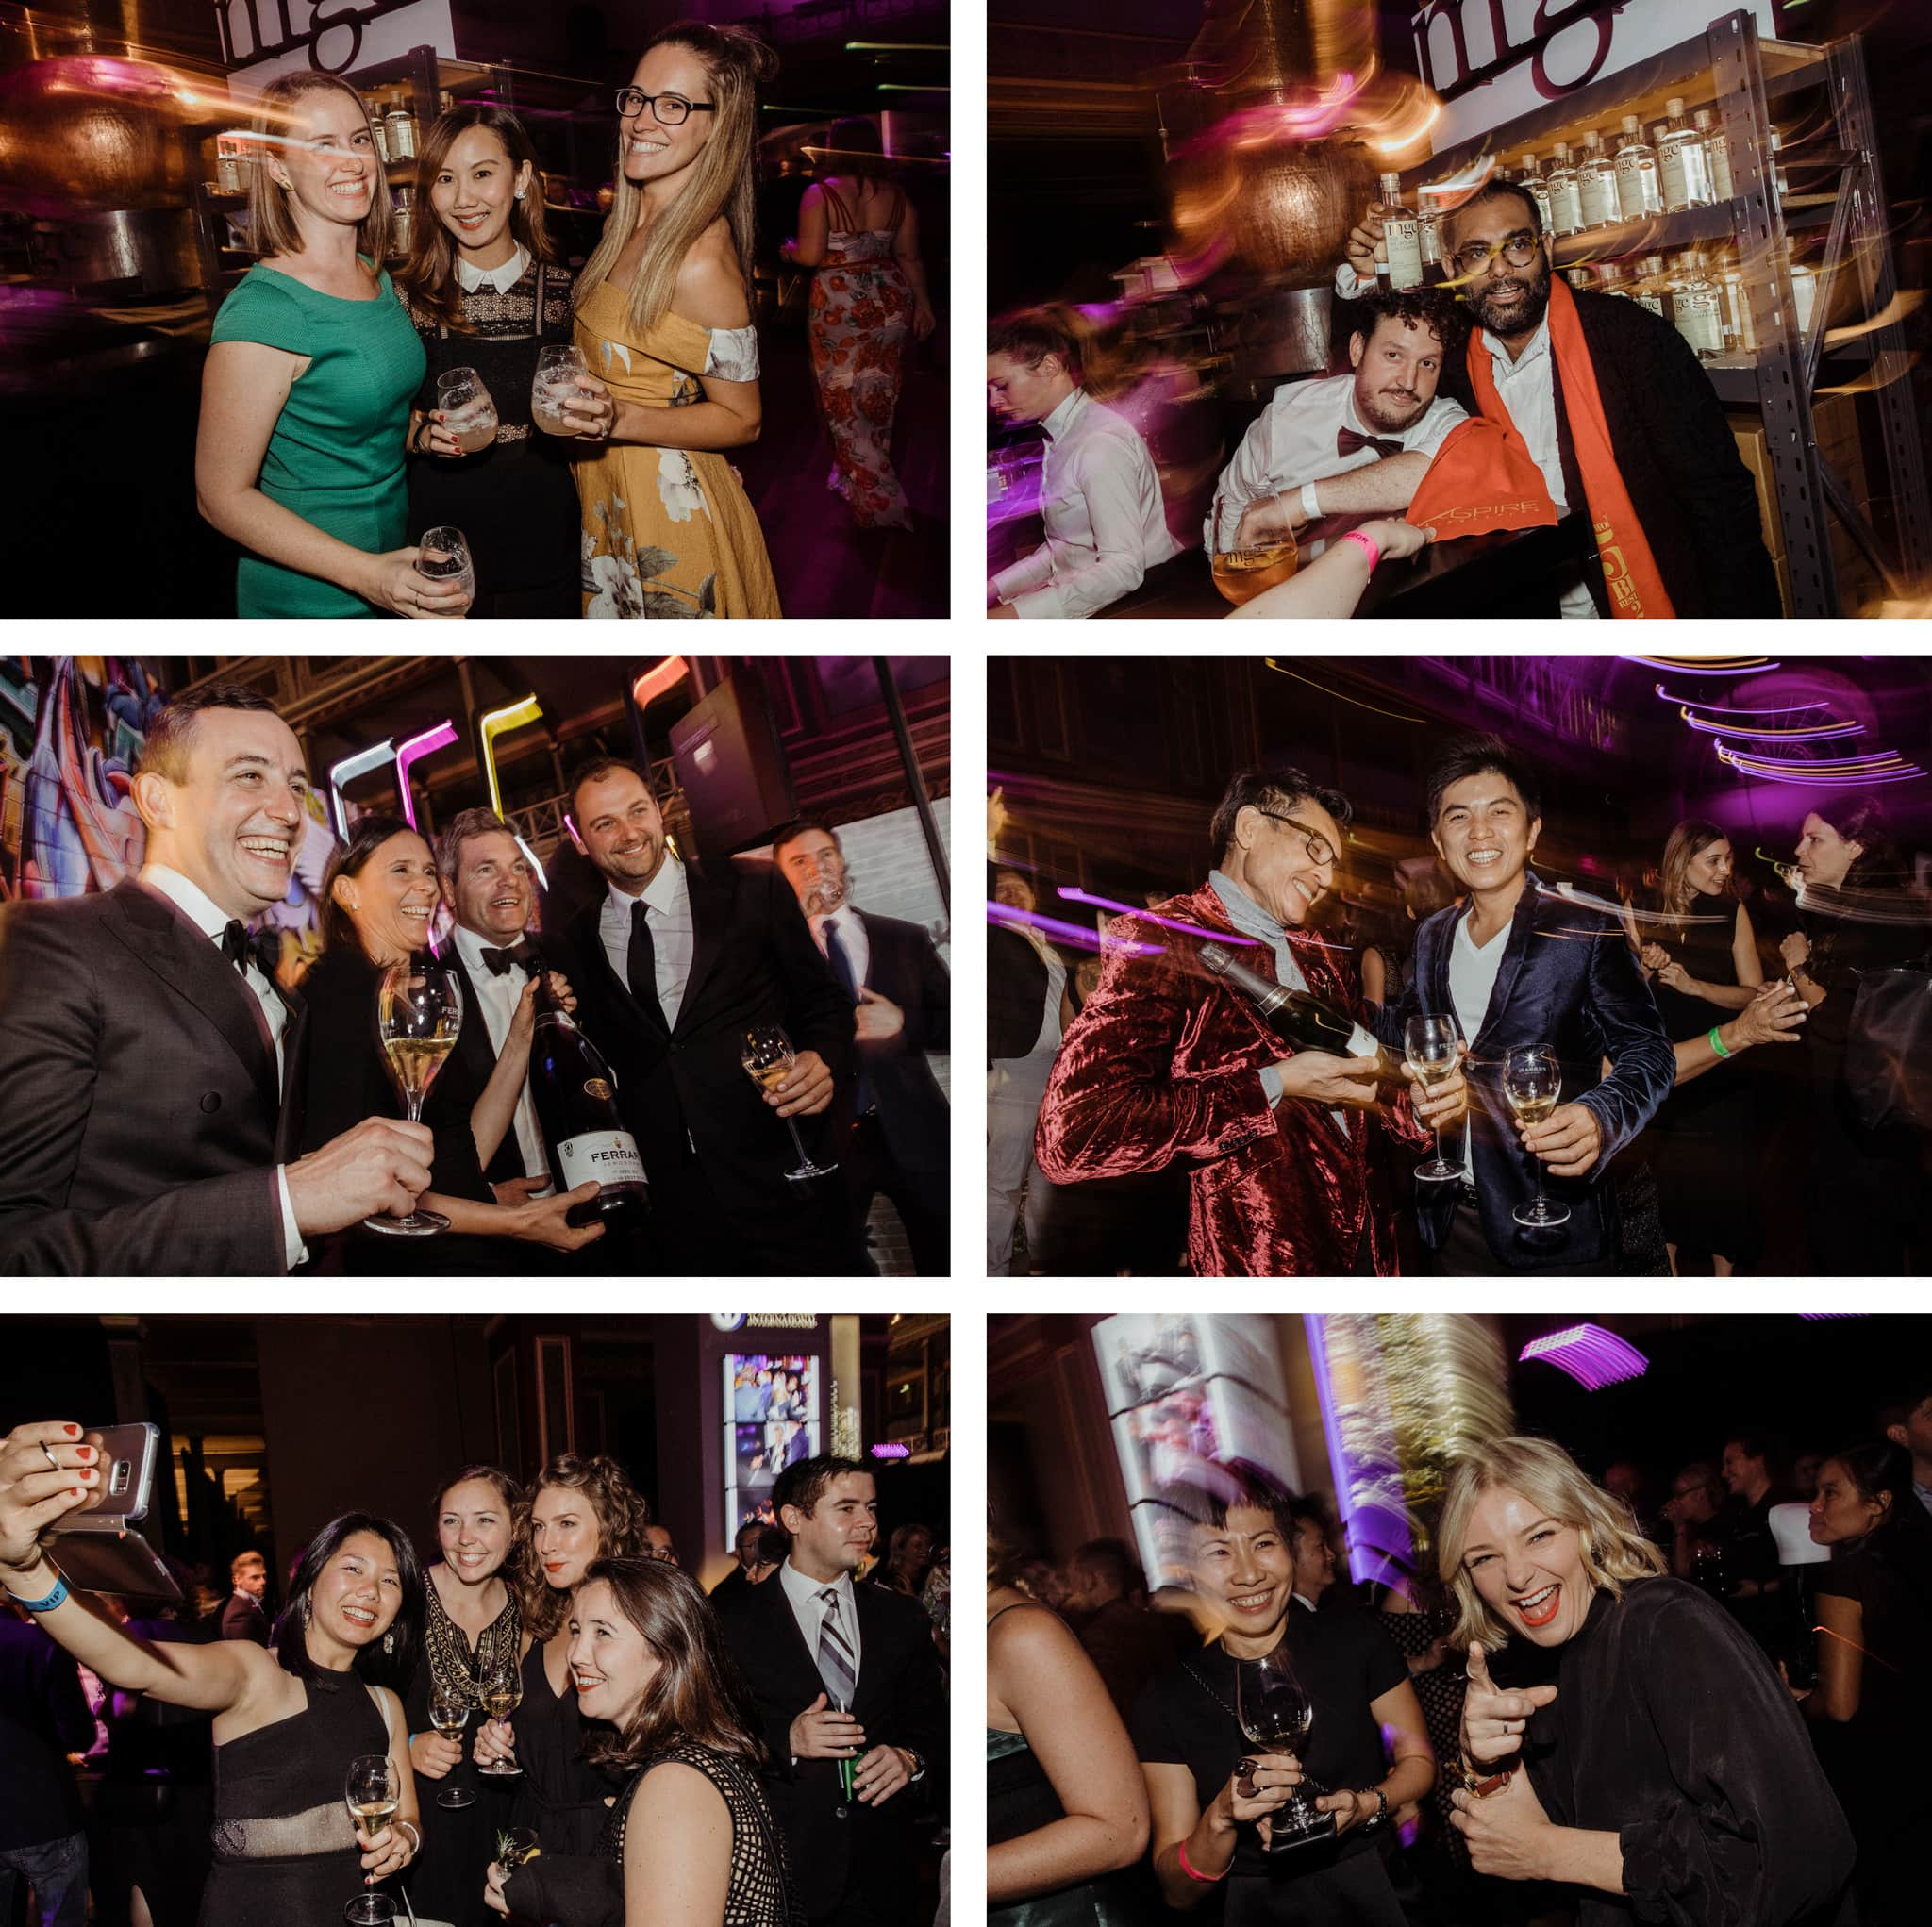 party photographer in melbourne - atmosphere and fun